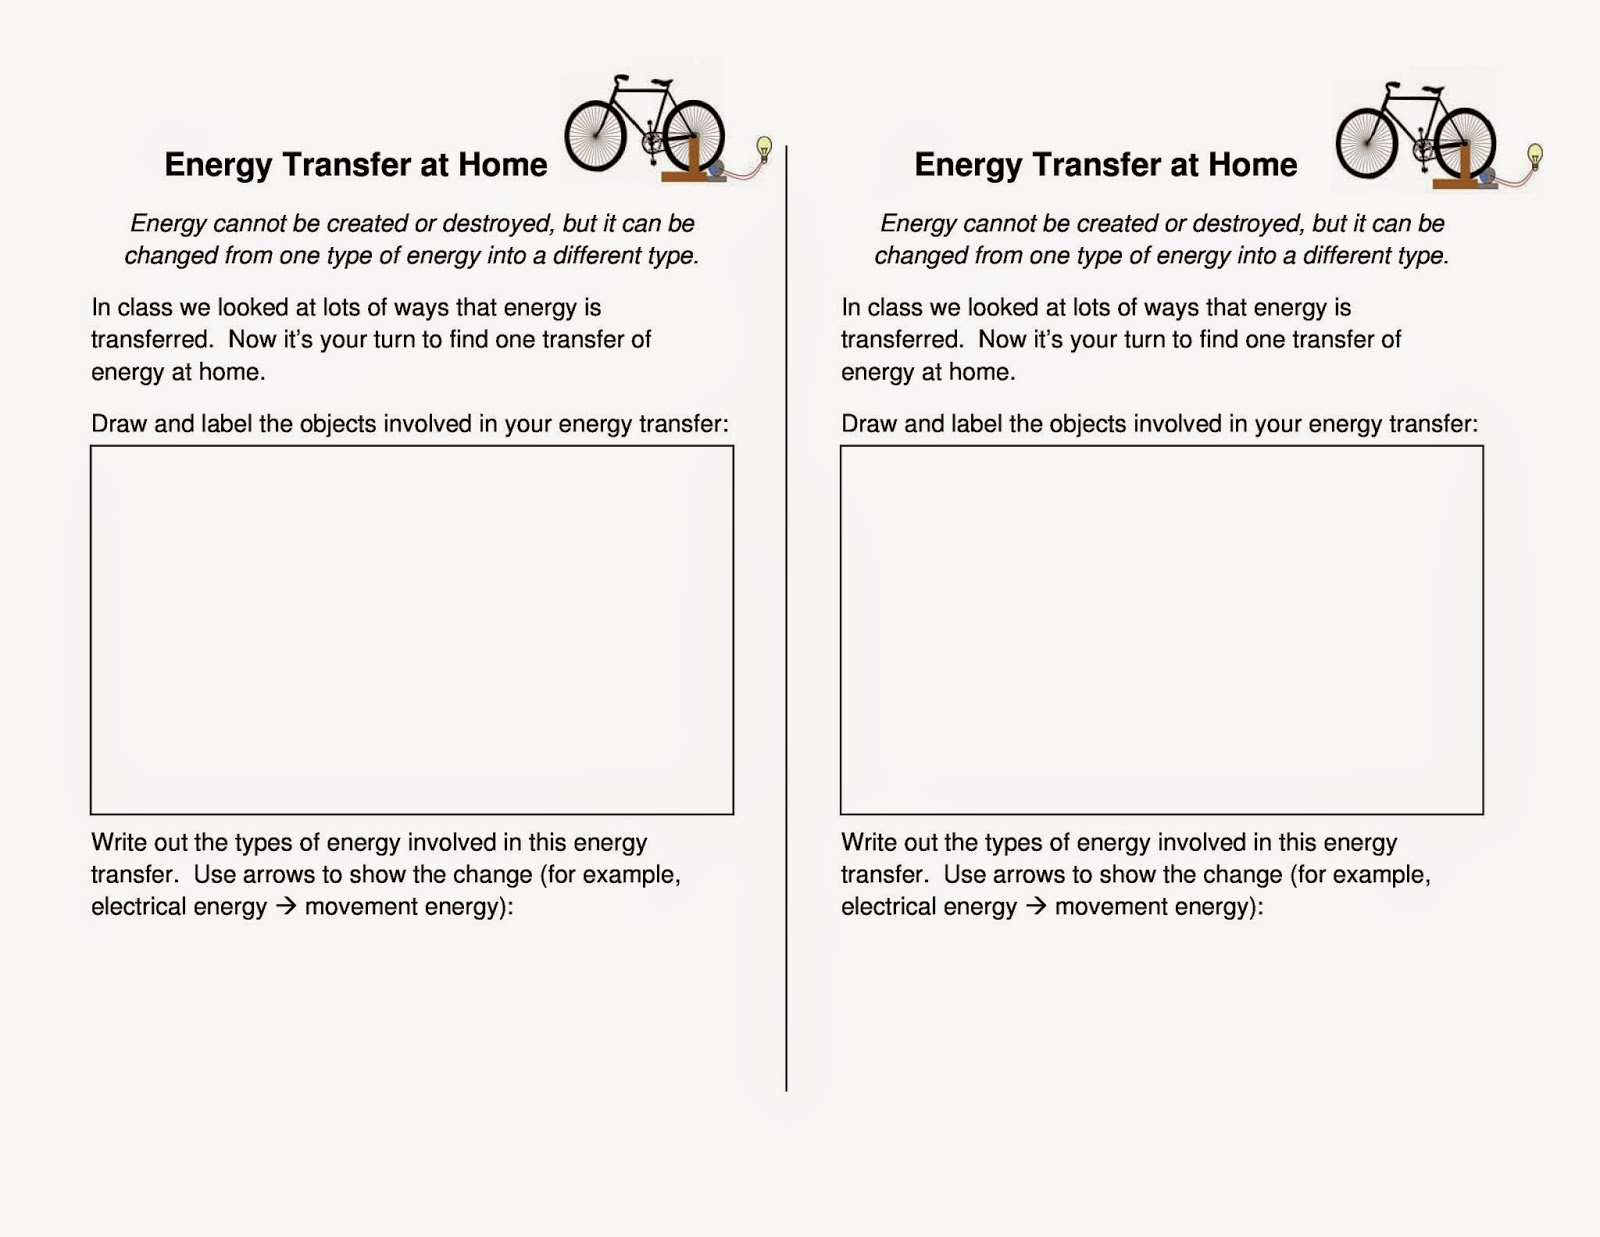 Worksheets Energy Transfer Worksheet homeschool adventures in engineering september 2014 here is a copy of the energy transfer homework just case your student misplaced worksheet